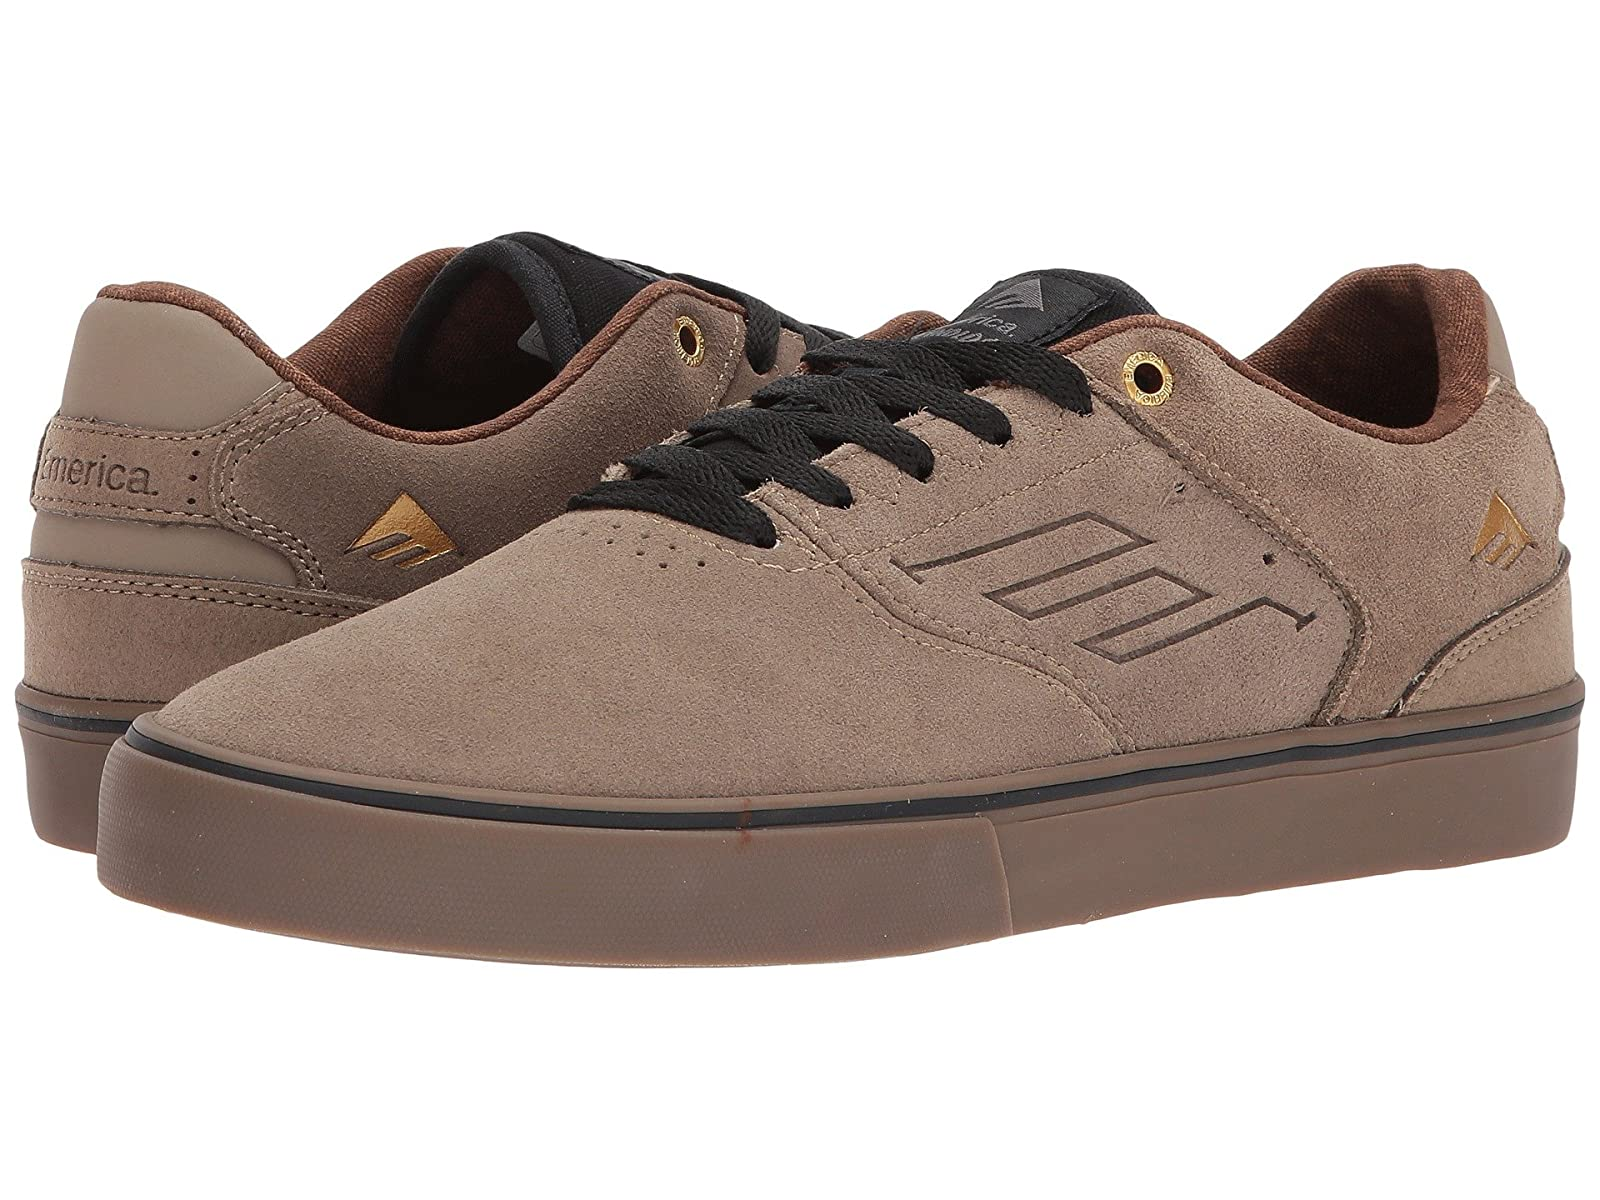 Emerica The Low Reynolds Low The Vulc:High Quality Materials:Man/Woman a75e37